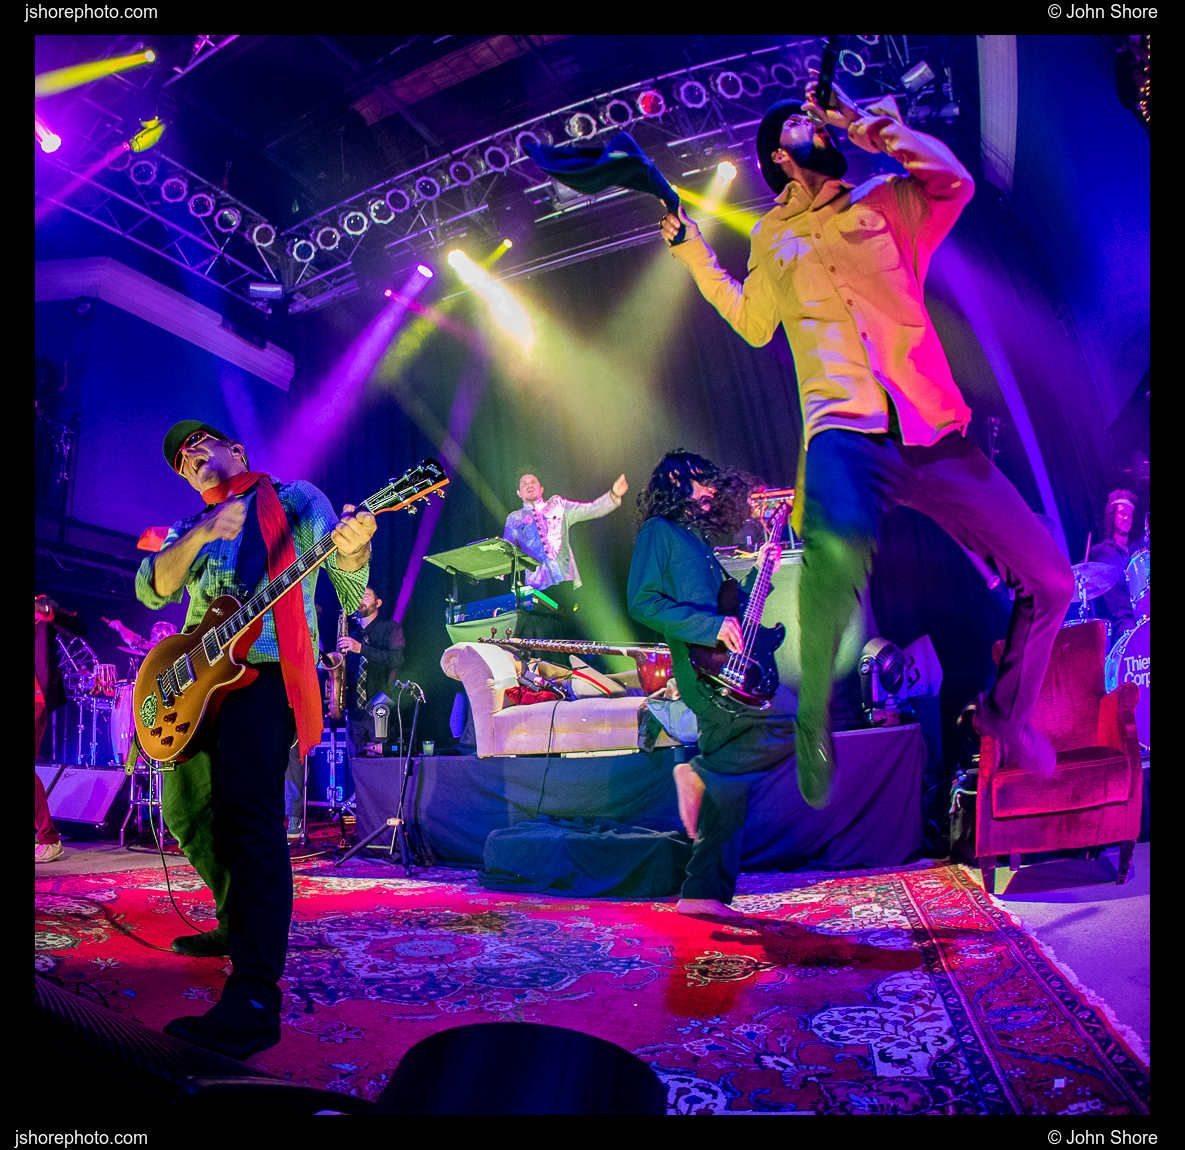 New Tour Don T Miss Thieverycorporation In A City Near You Click To Check Tour Dates And Grab Pres Thievery Corporation Artists On Tour Entertainment Music